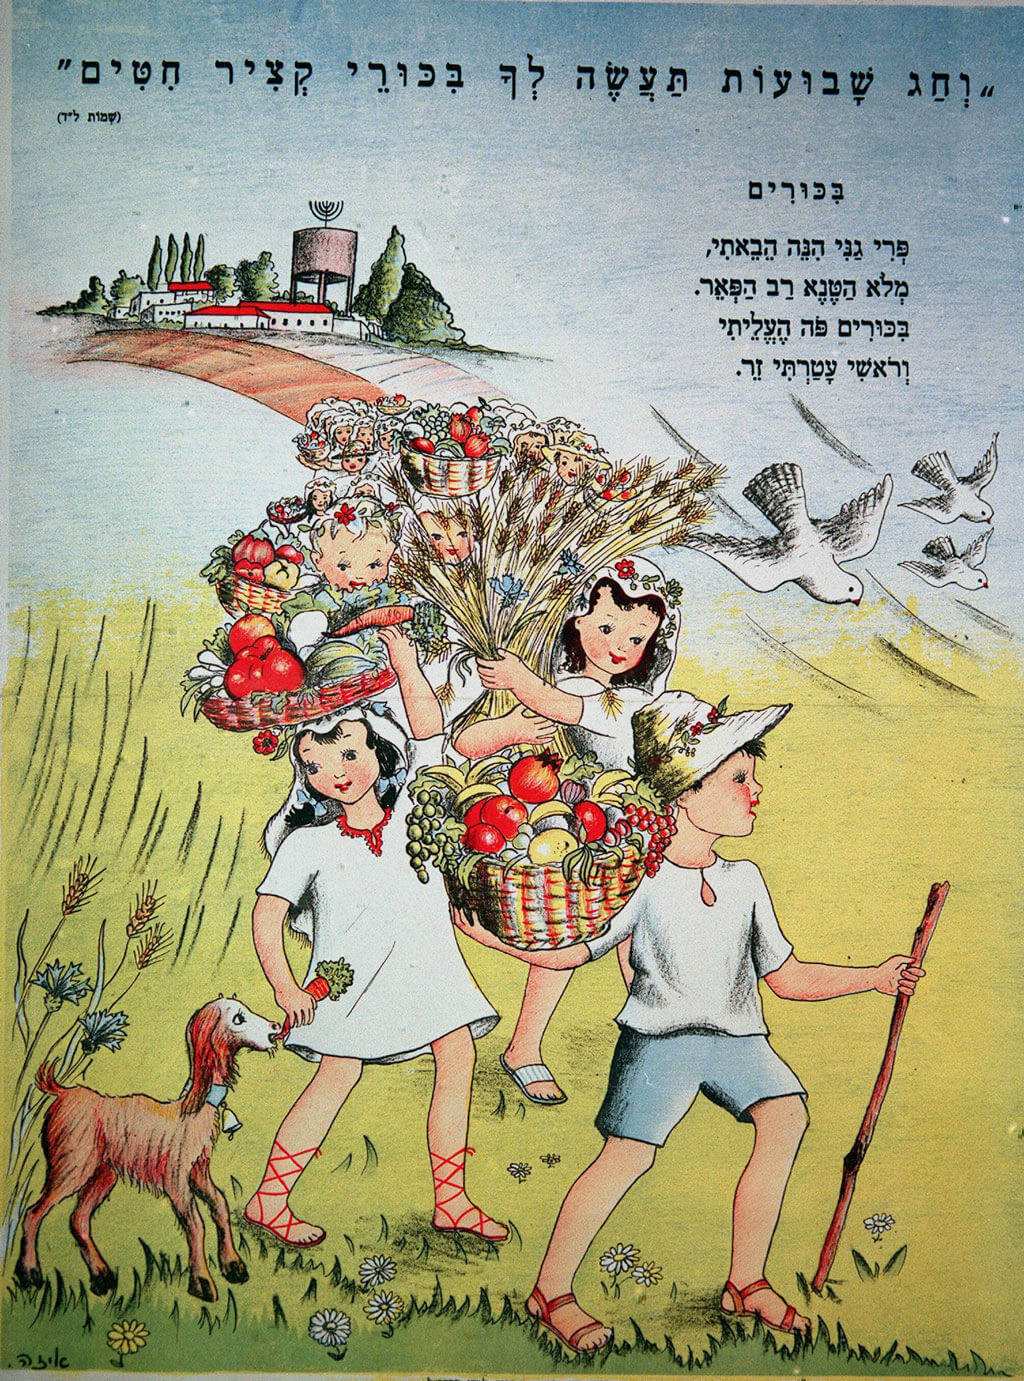 shavuot שבועות || A poster from the late 1940's depicting the Shavuot (Feast of Pentecost) Holiday. עלון מסוף שנות ה-40 לכבוד חג השבועות